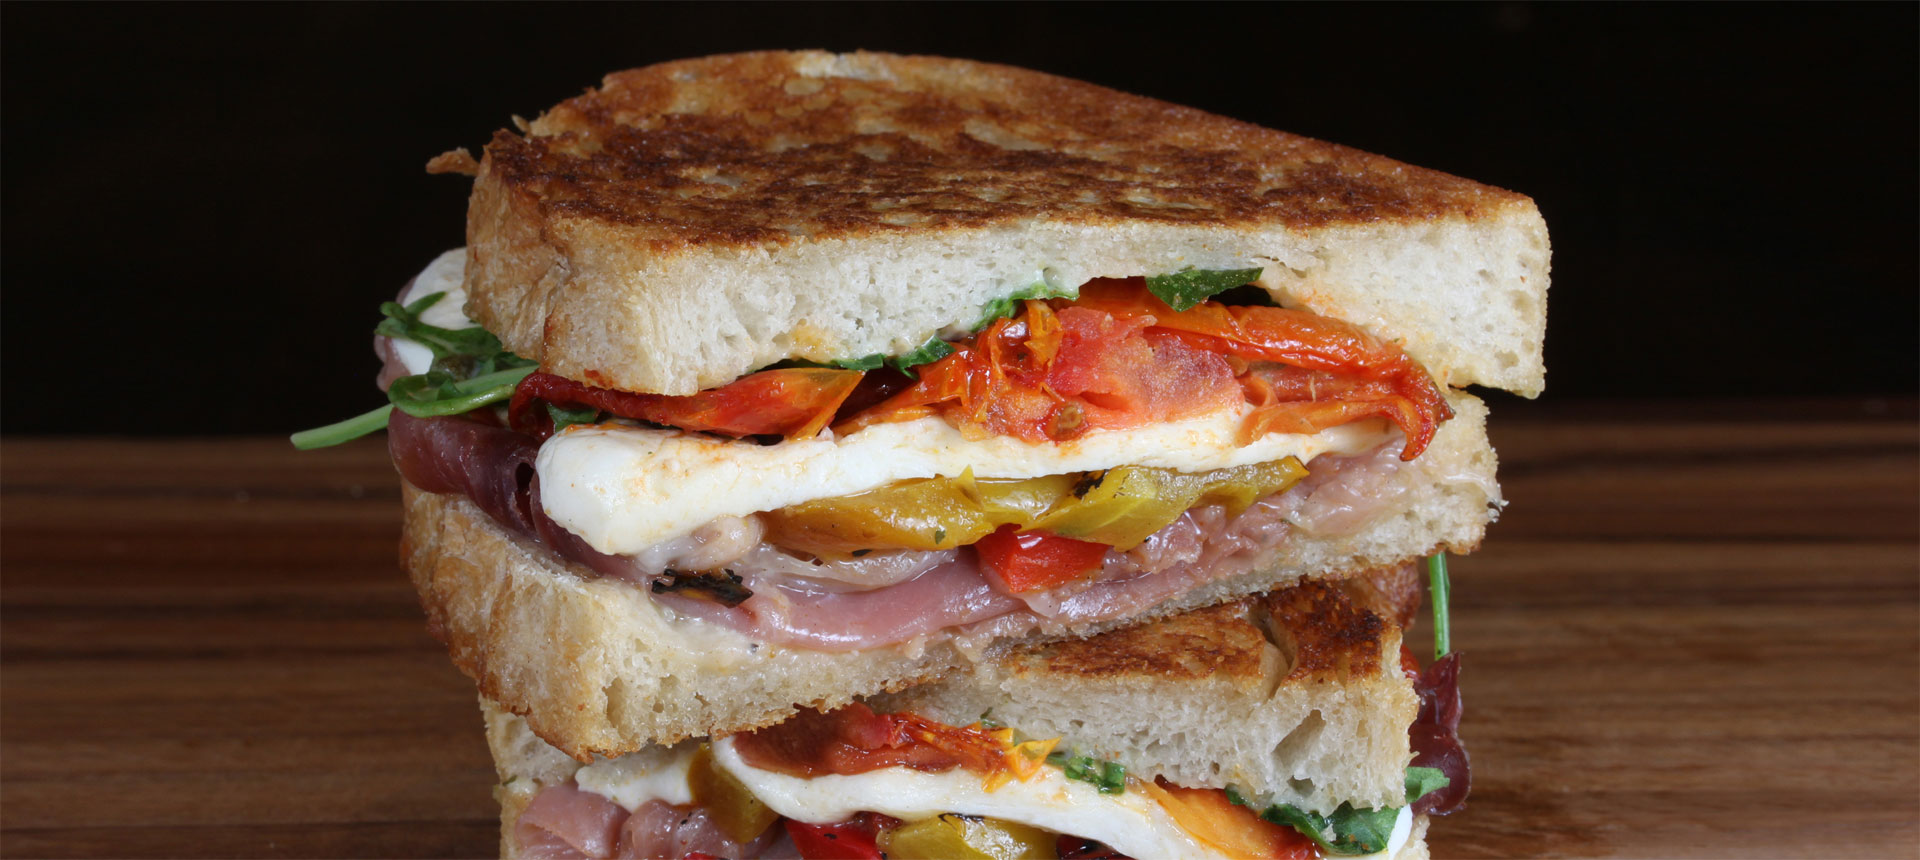 Featuring Haliburton Slow Roasted Tomato, Roasted Bell Pepper Blend, Herb Aioli